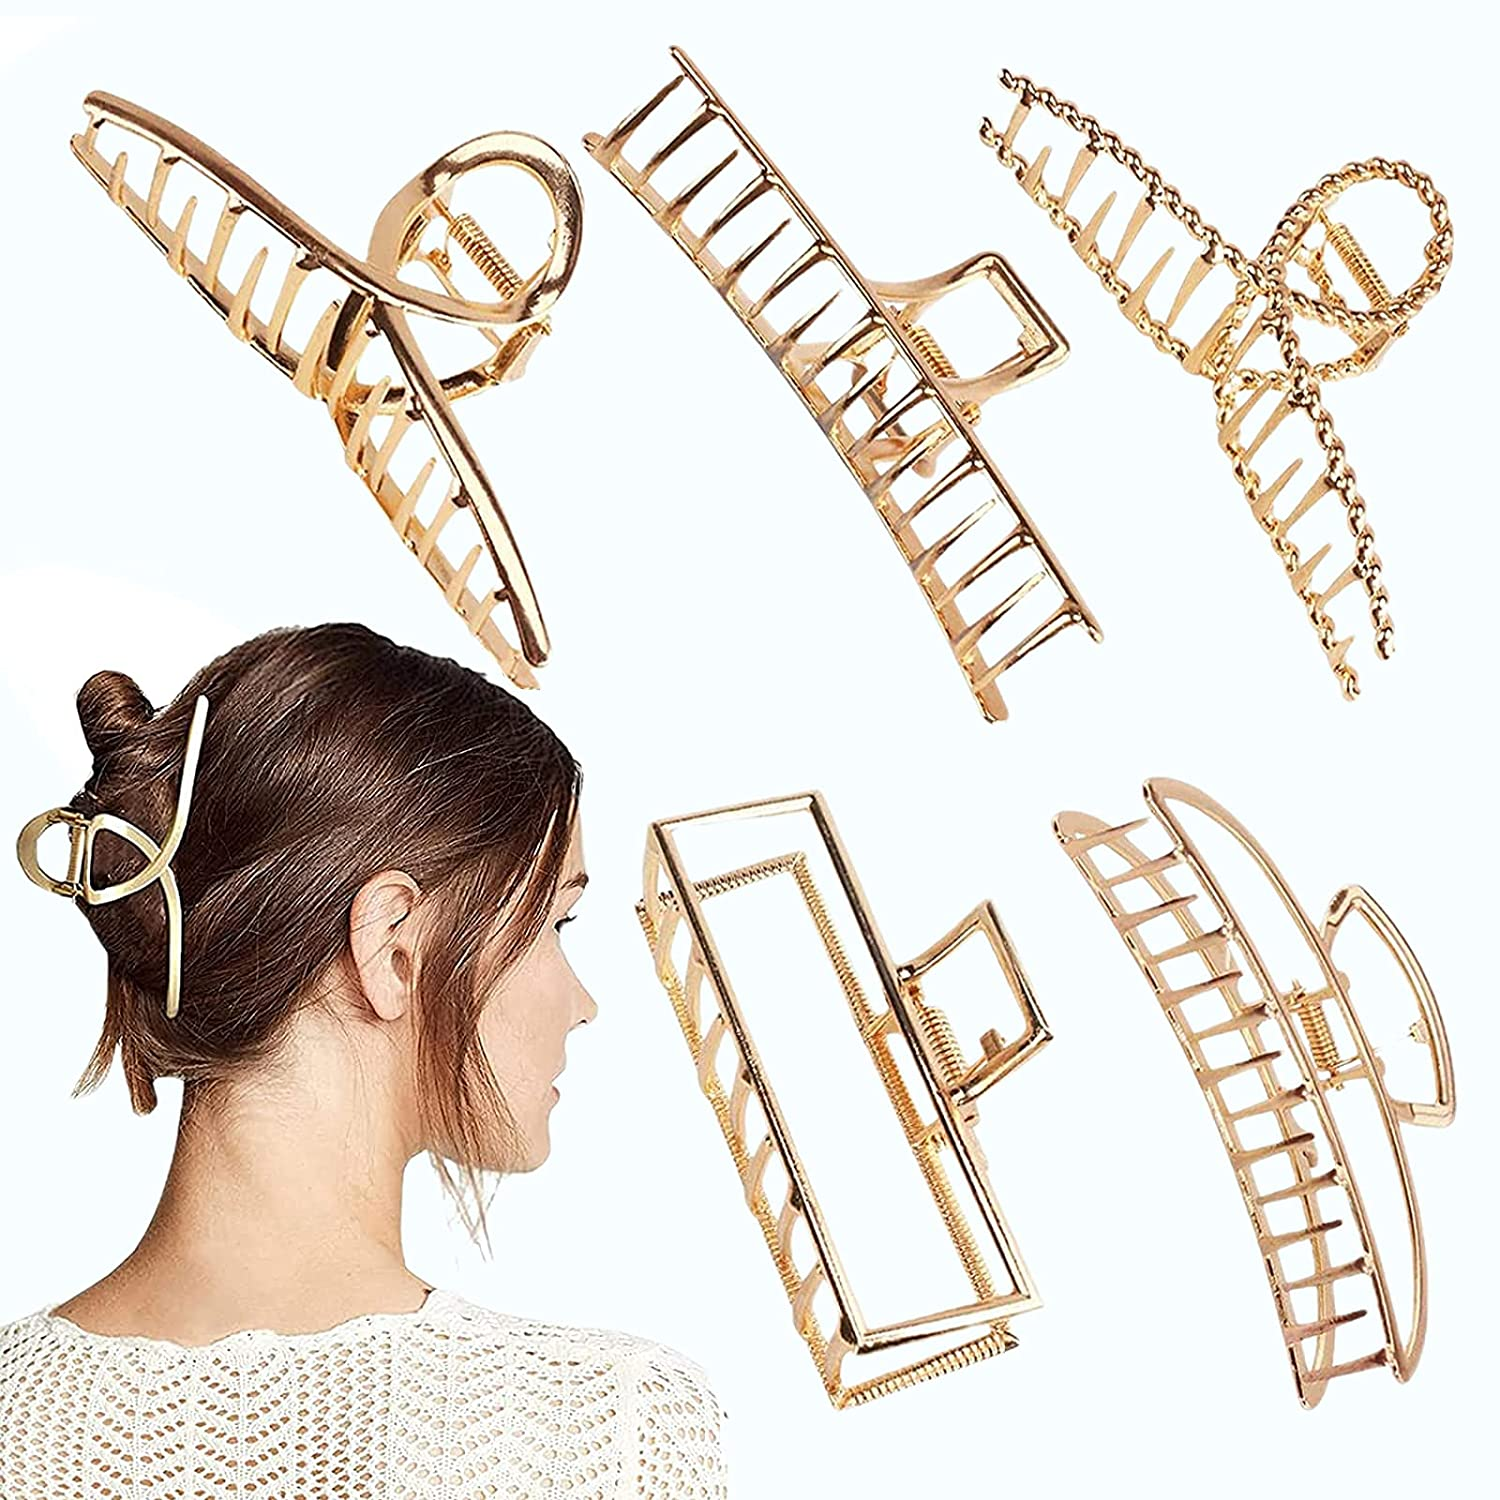 4.7 Inch Large Gold Metal Hair Claw Clips Big St 5PCS Be Cheap super welcome